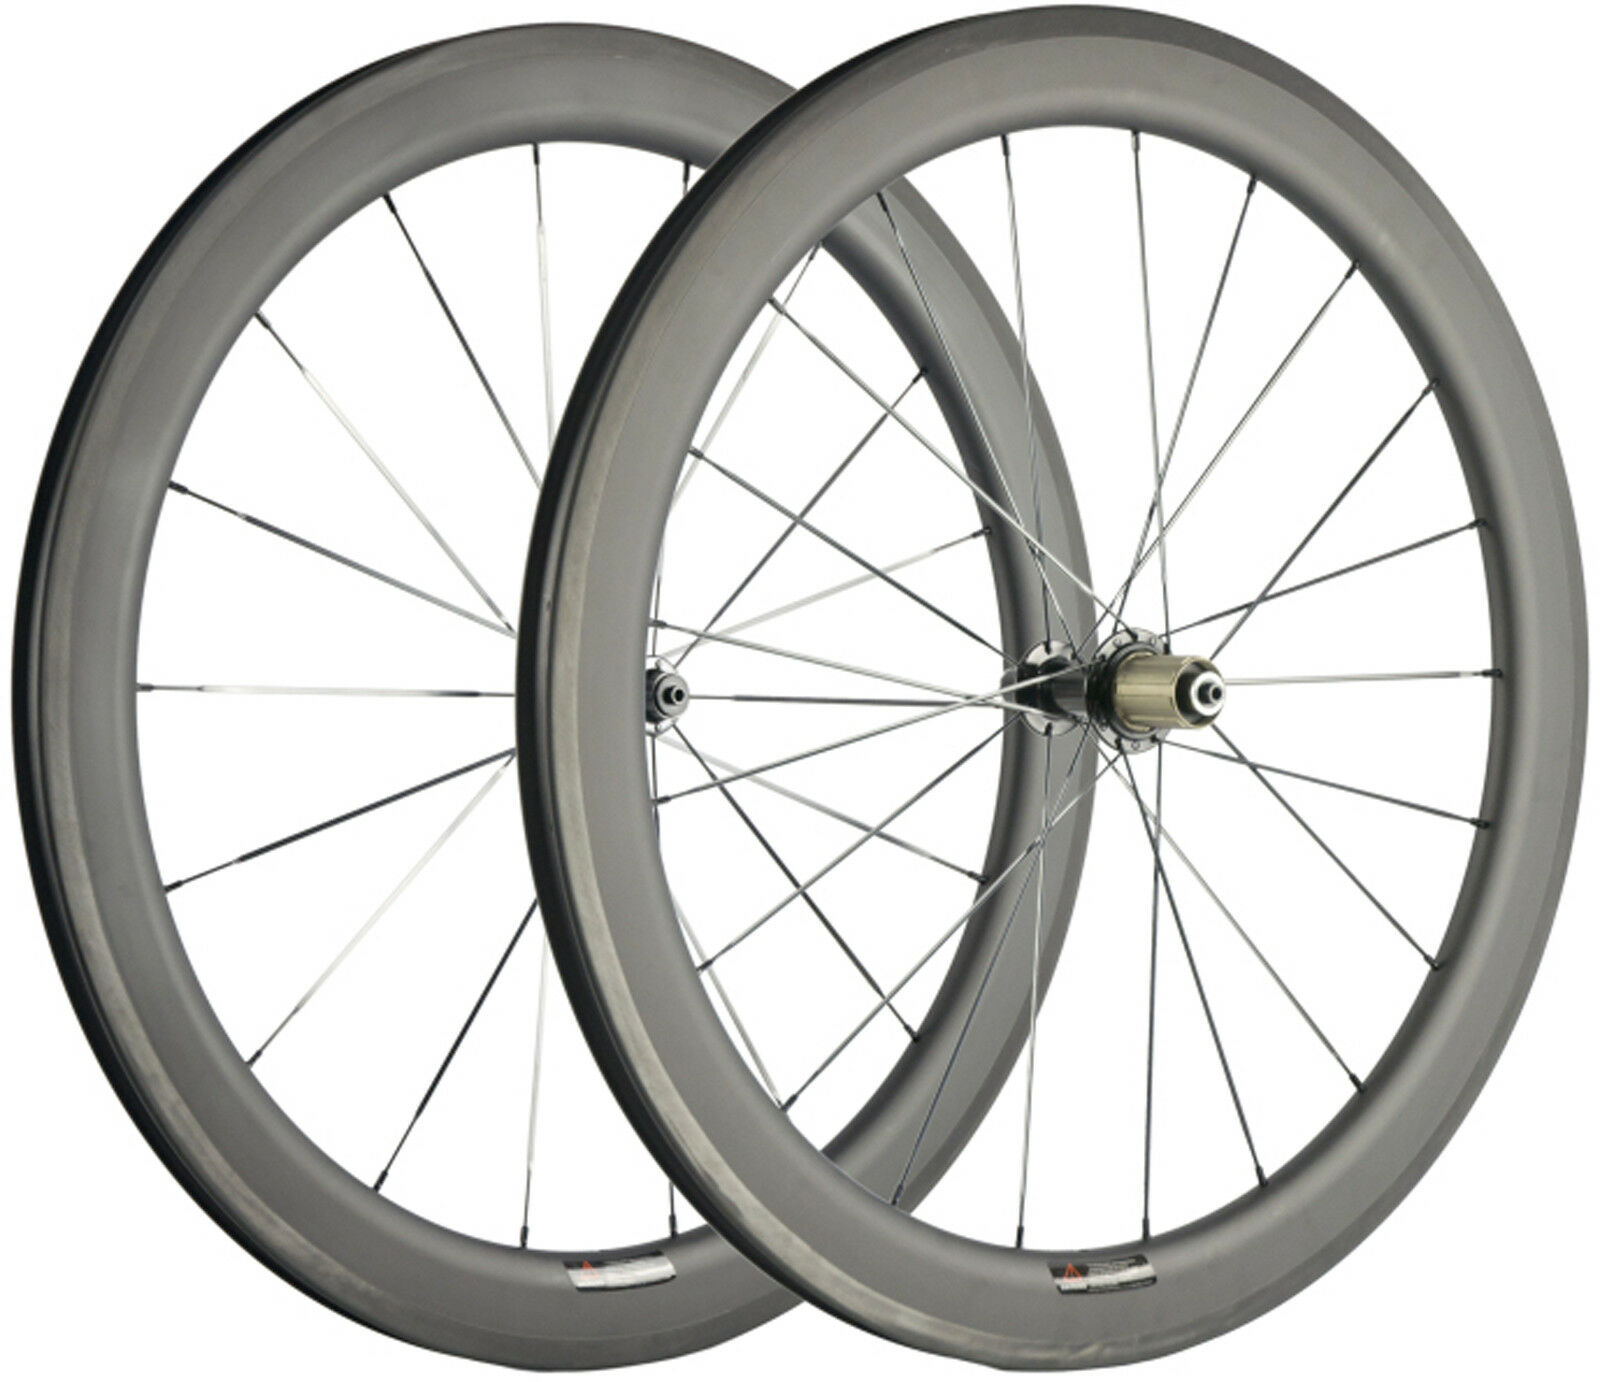 Carbon Wheels Road  Bike Clincher 45mm Depth Carbon Wheelset Shimnao Campagnolo  the classic style